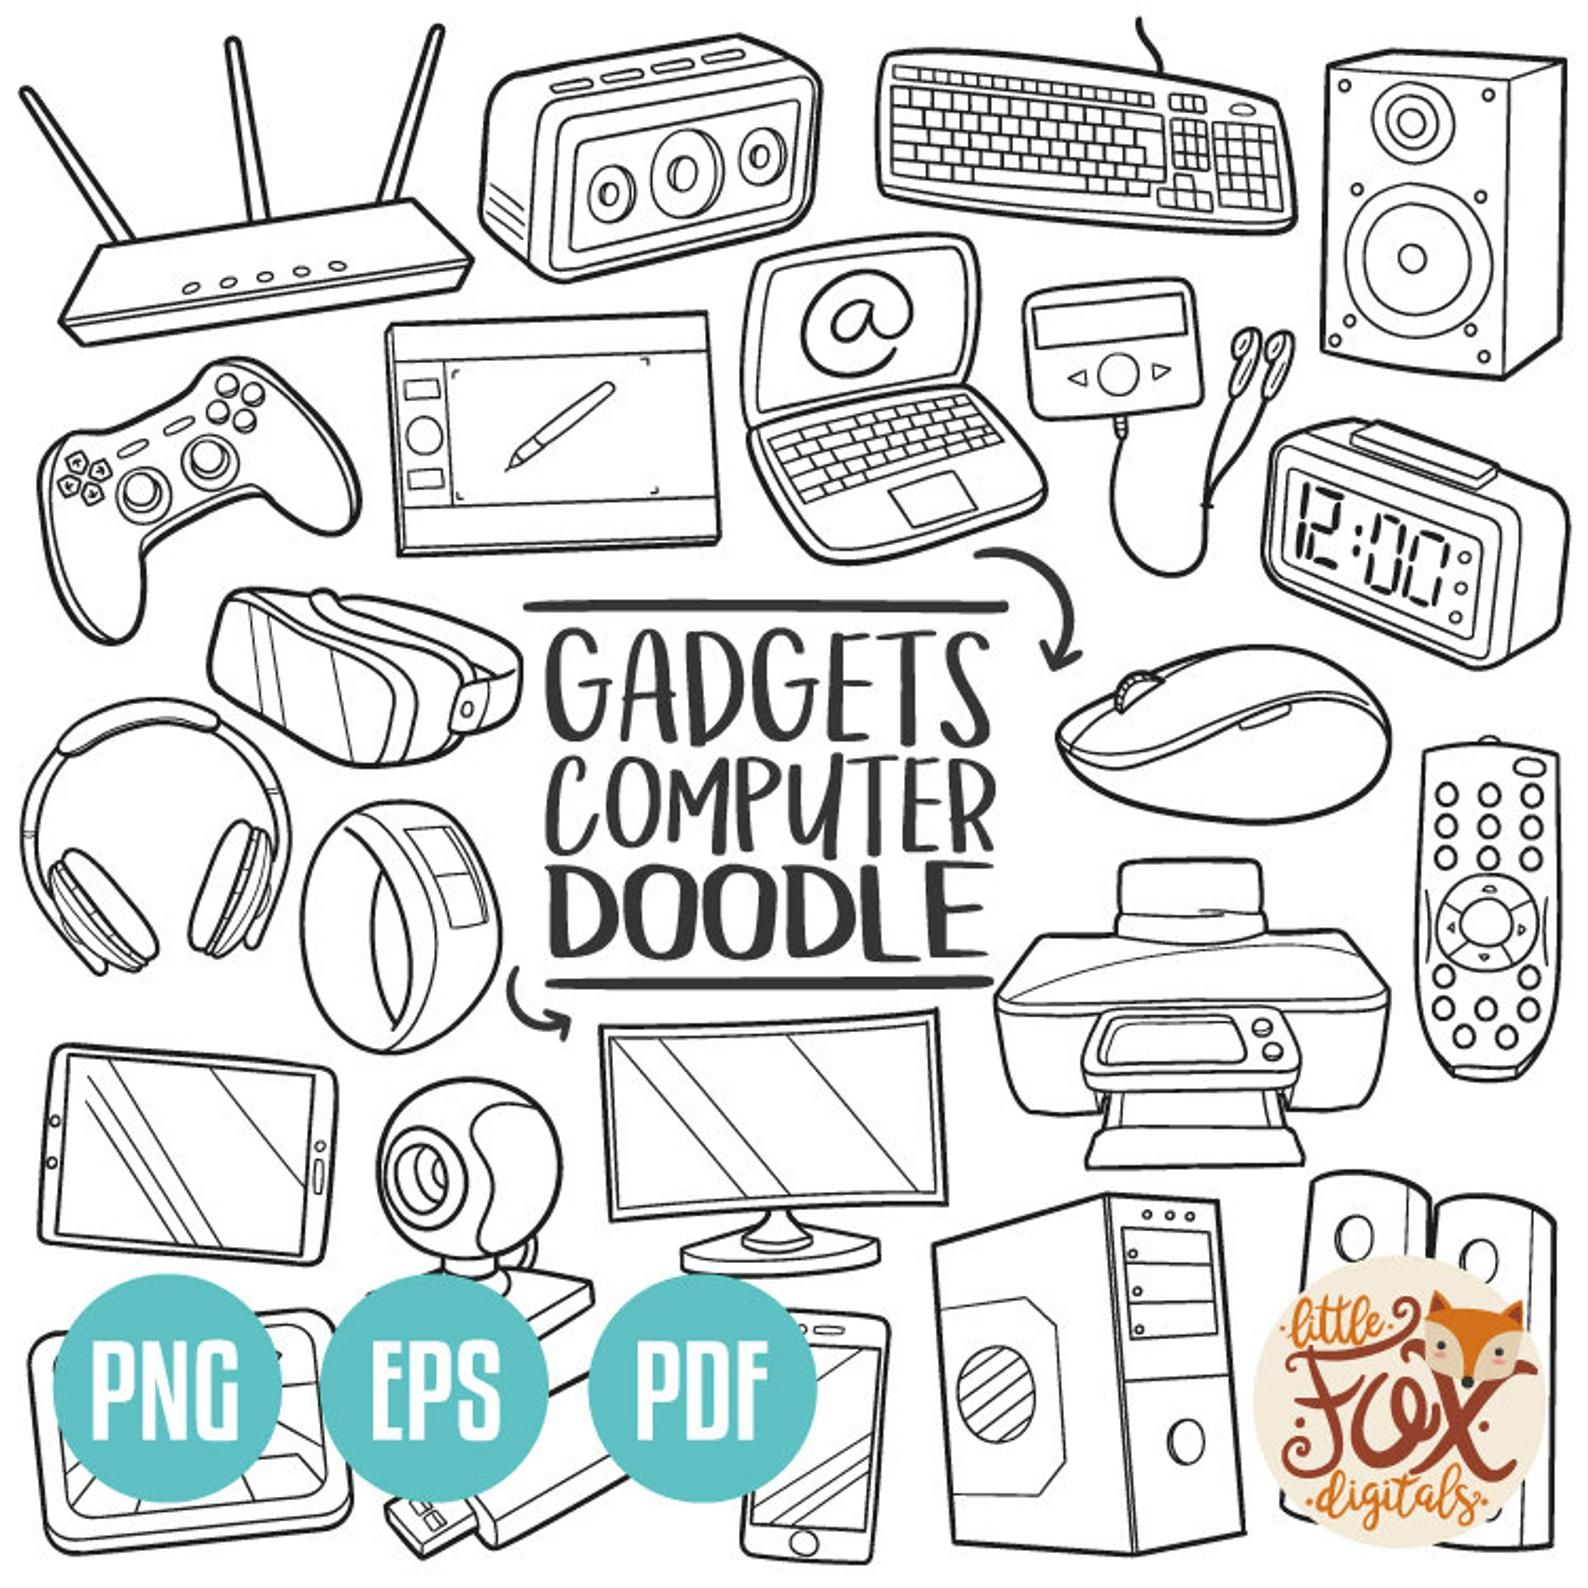 Gadgets Doodle Vector Icons Computer Technology Tools Etsy In 2020 Line Art Design Doodle Icon Doodles